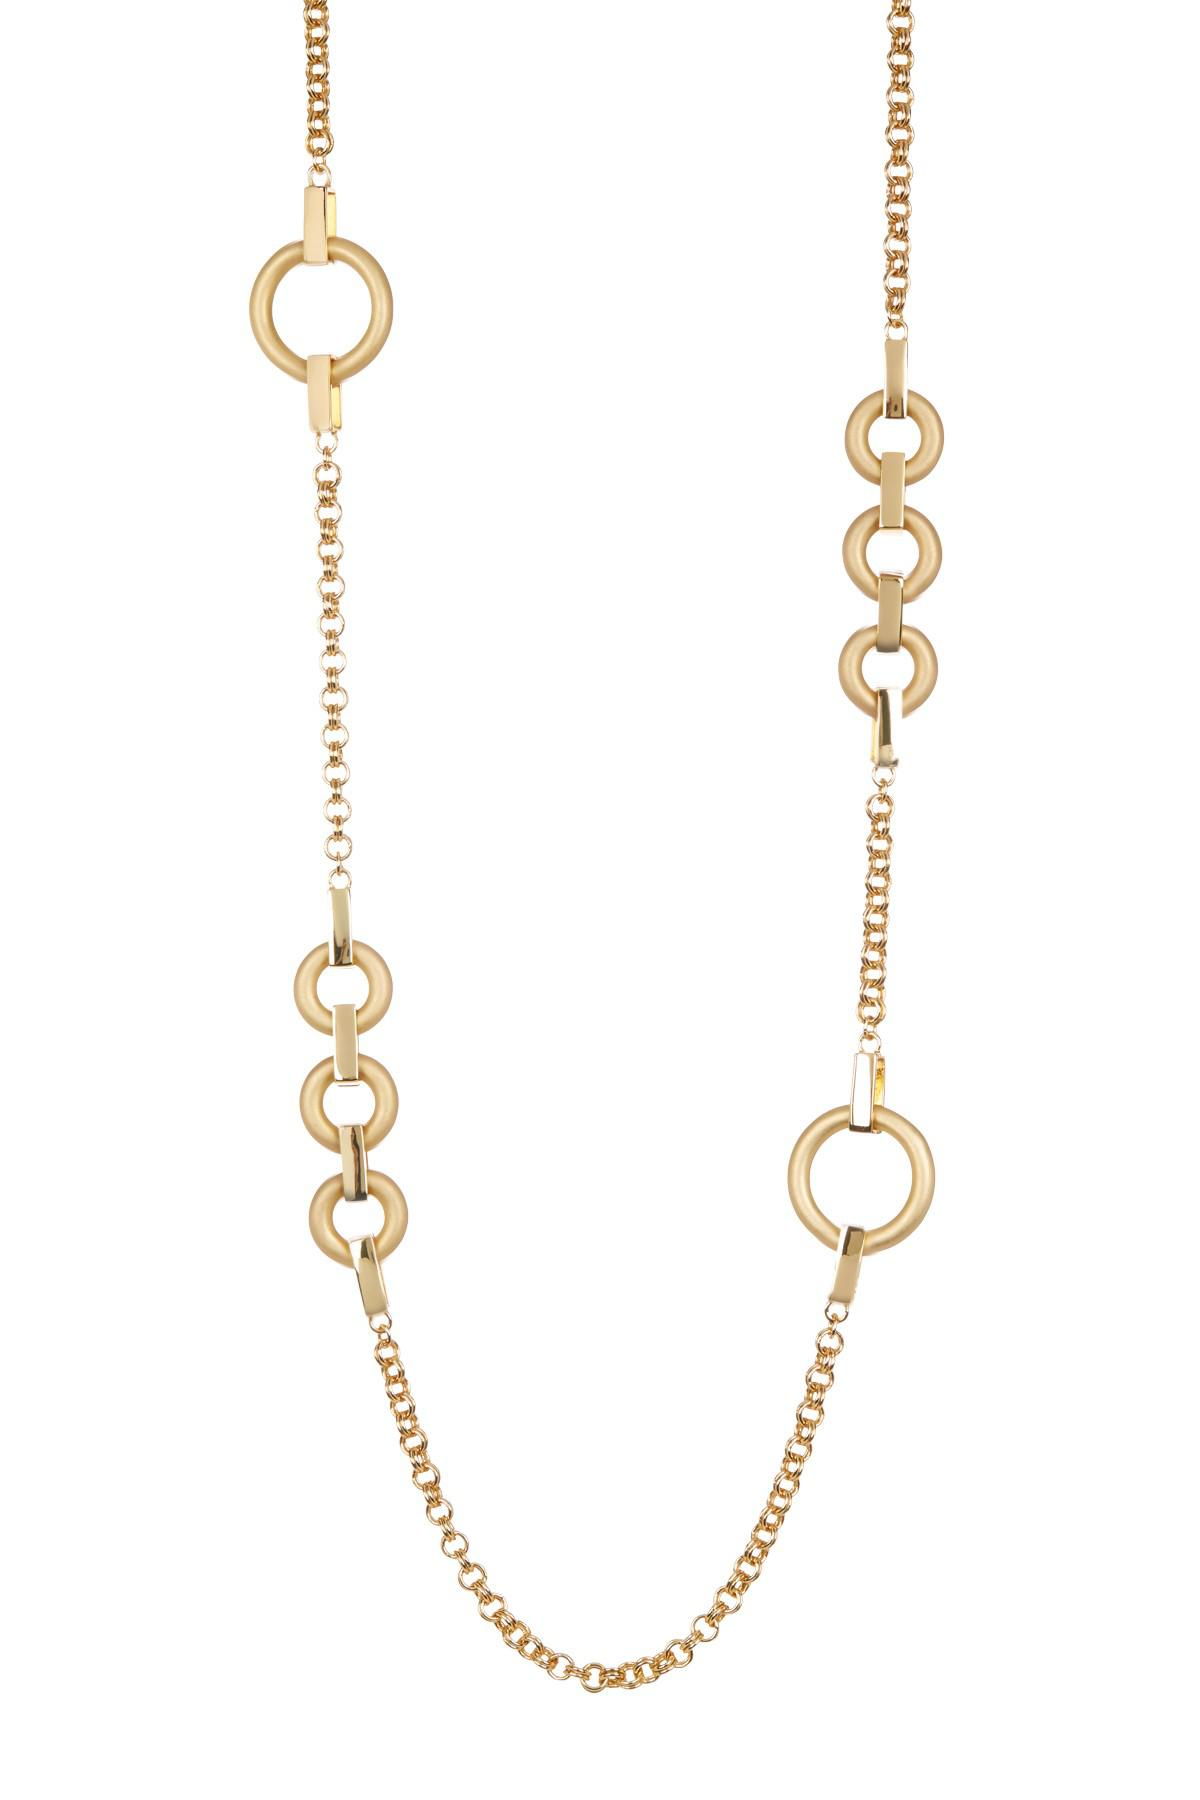 Trina Turk Long Illusion Link Necklace